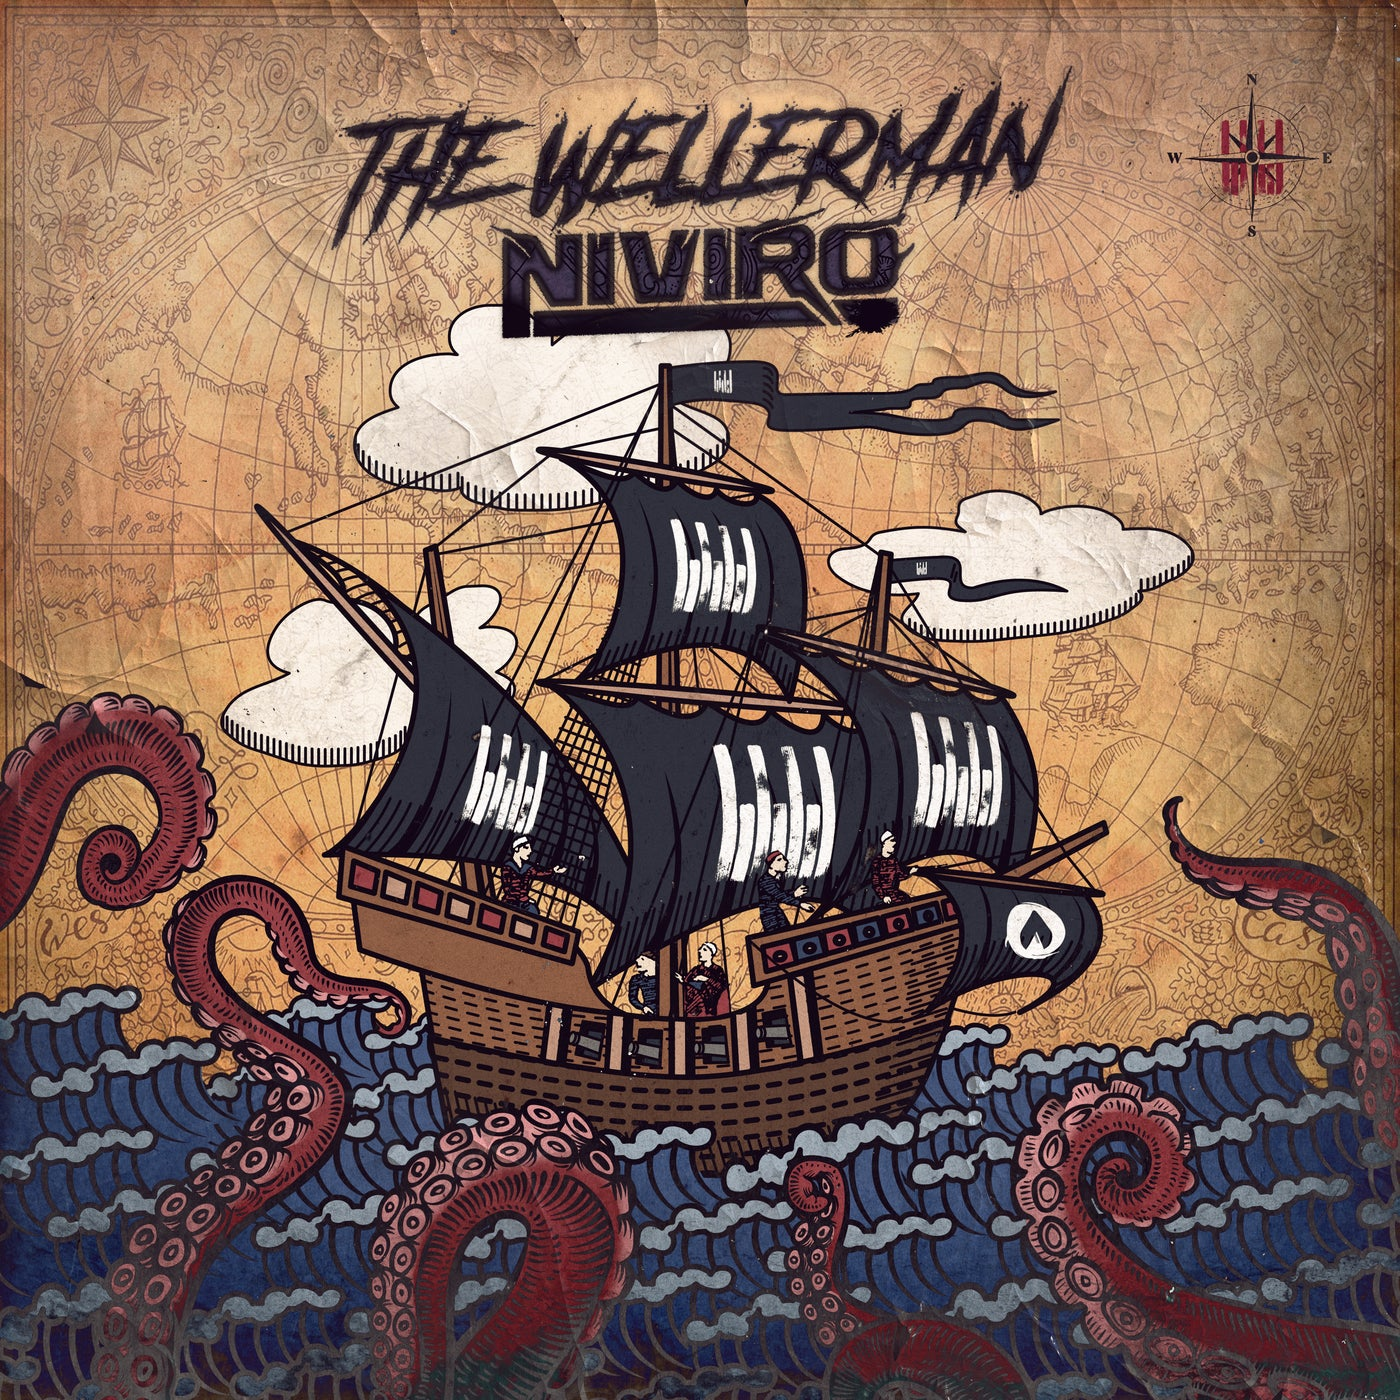 The Wellerman (Sea Shanty) (Extended Mix)